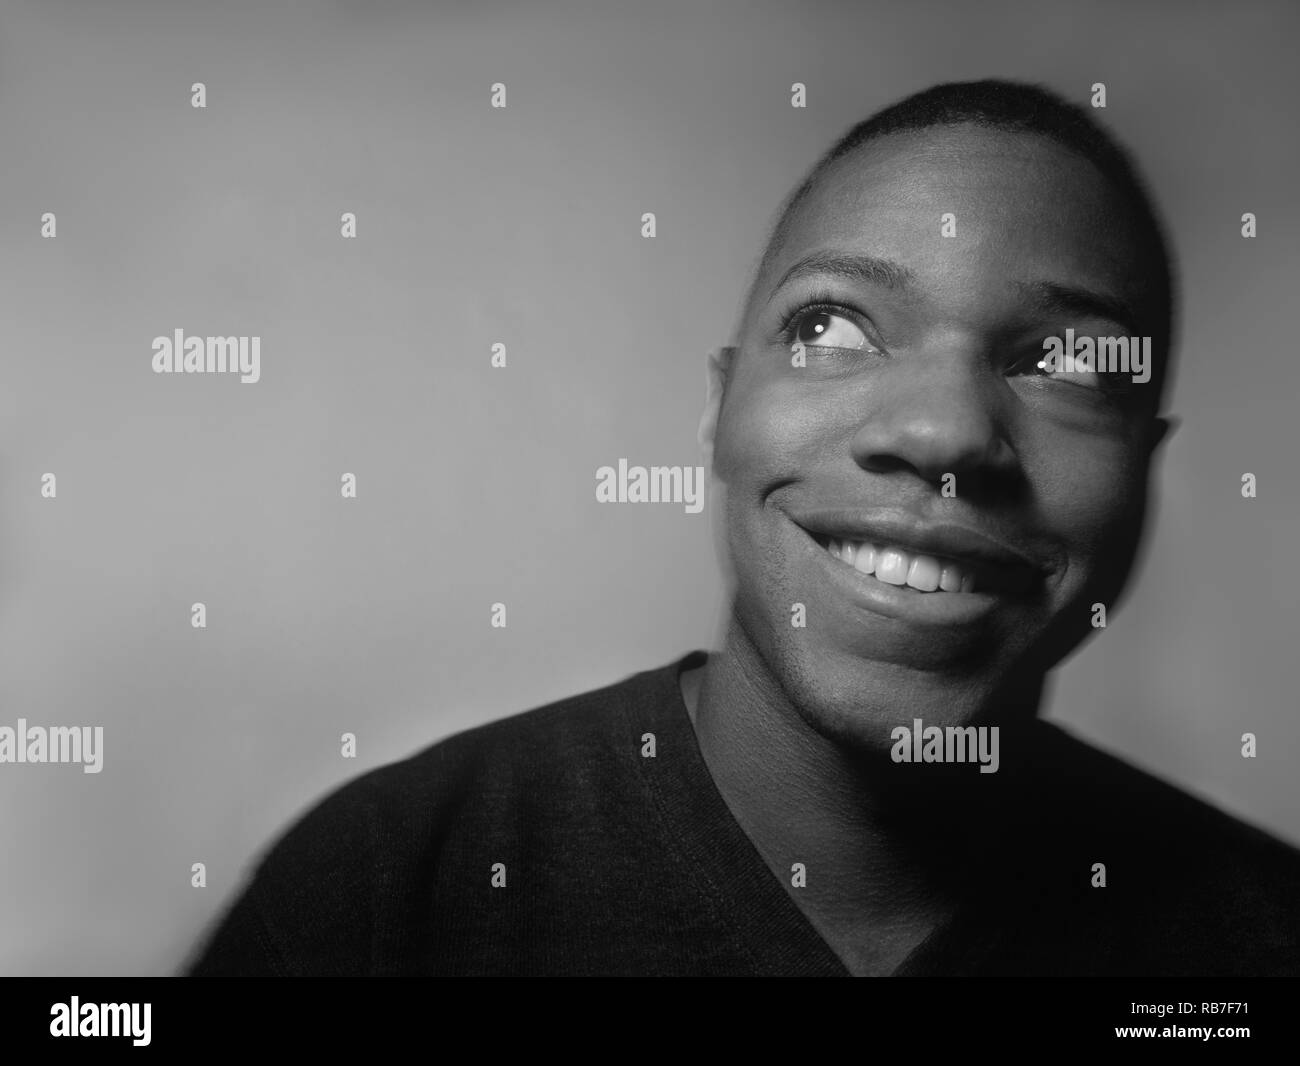 Black man smiling and thinking about something in his mind and looking to the right - Stock Image